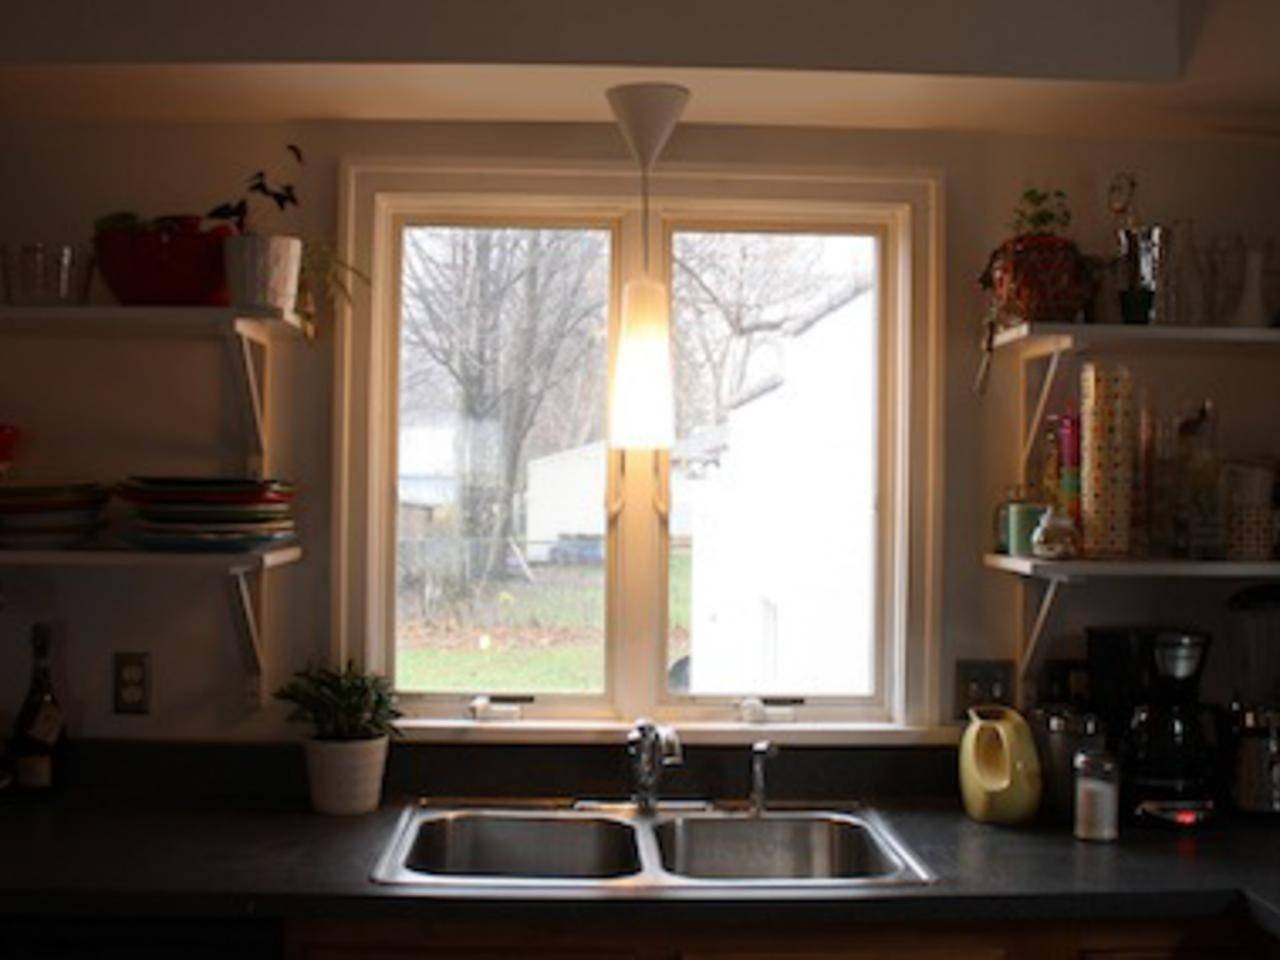 How To Install A Kitchen Pendant Light In 6 Easy Steps | Diy with regard to Pendant Lights Cover Plate (Image 10 of 15)